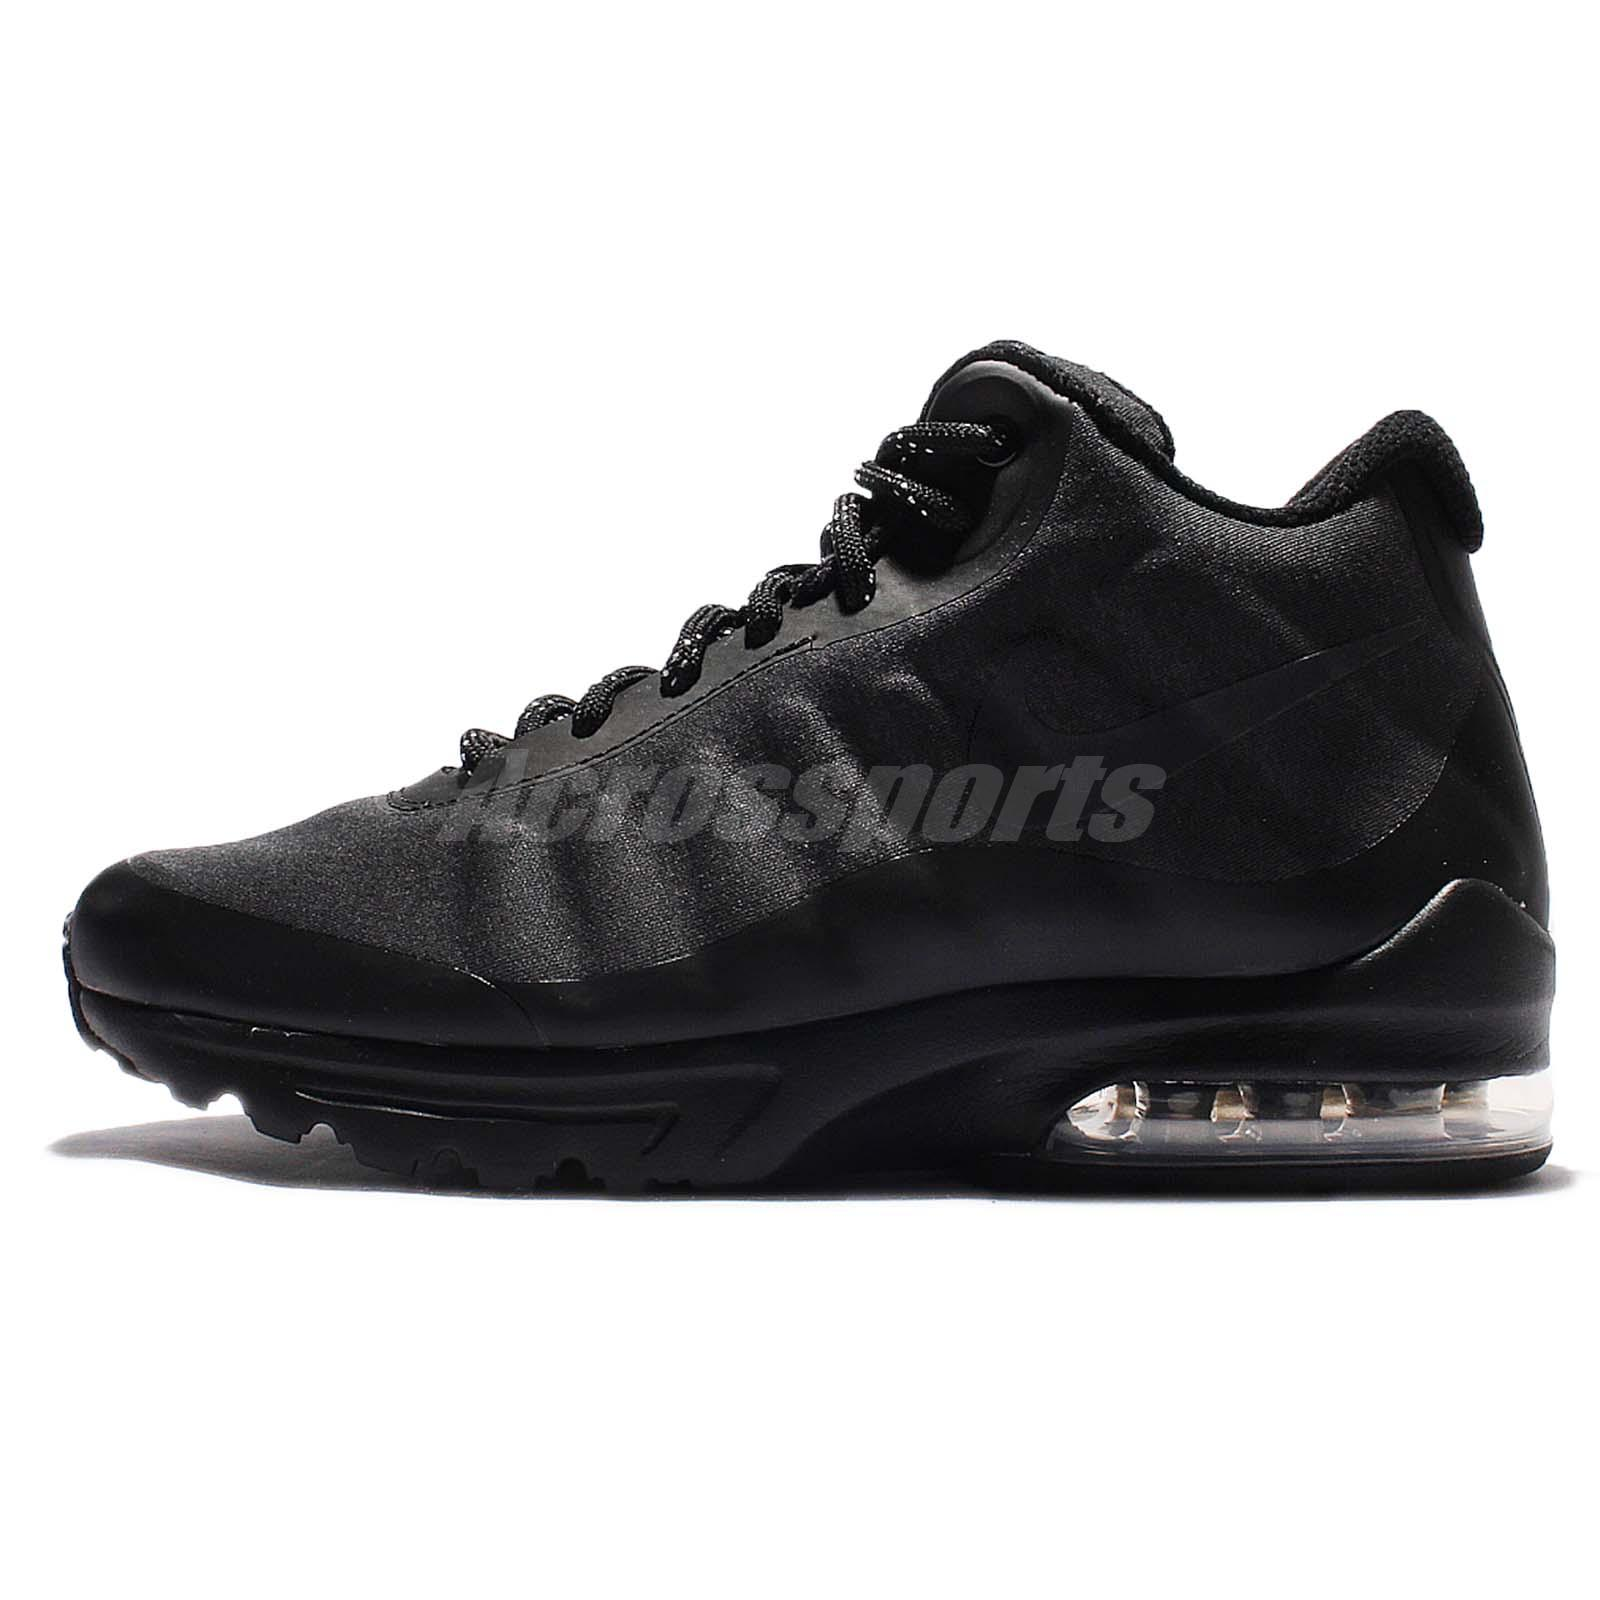 wmns nike air max invigor mid triple black womens running. Black Bedroom Furniture Sets. Home Design Ideas